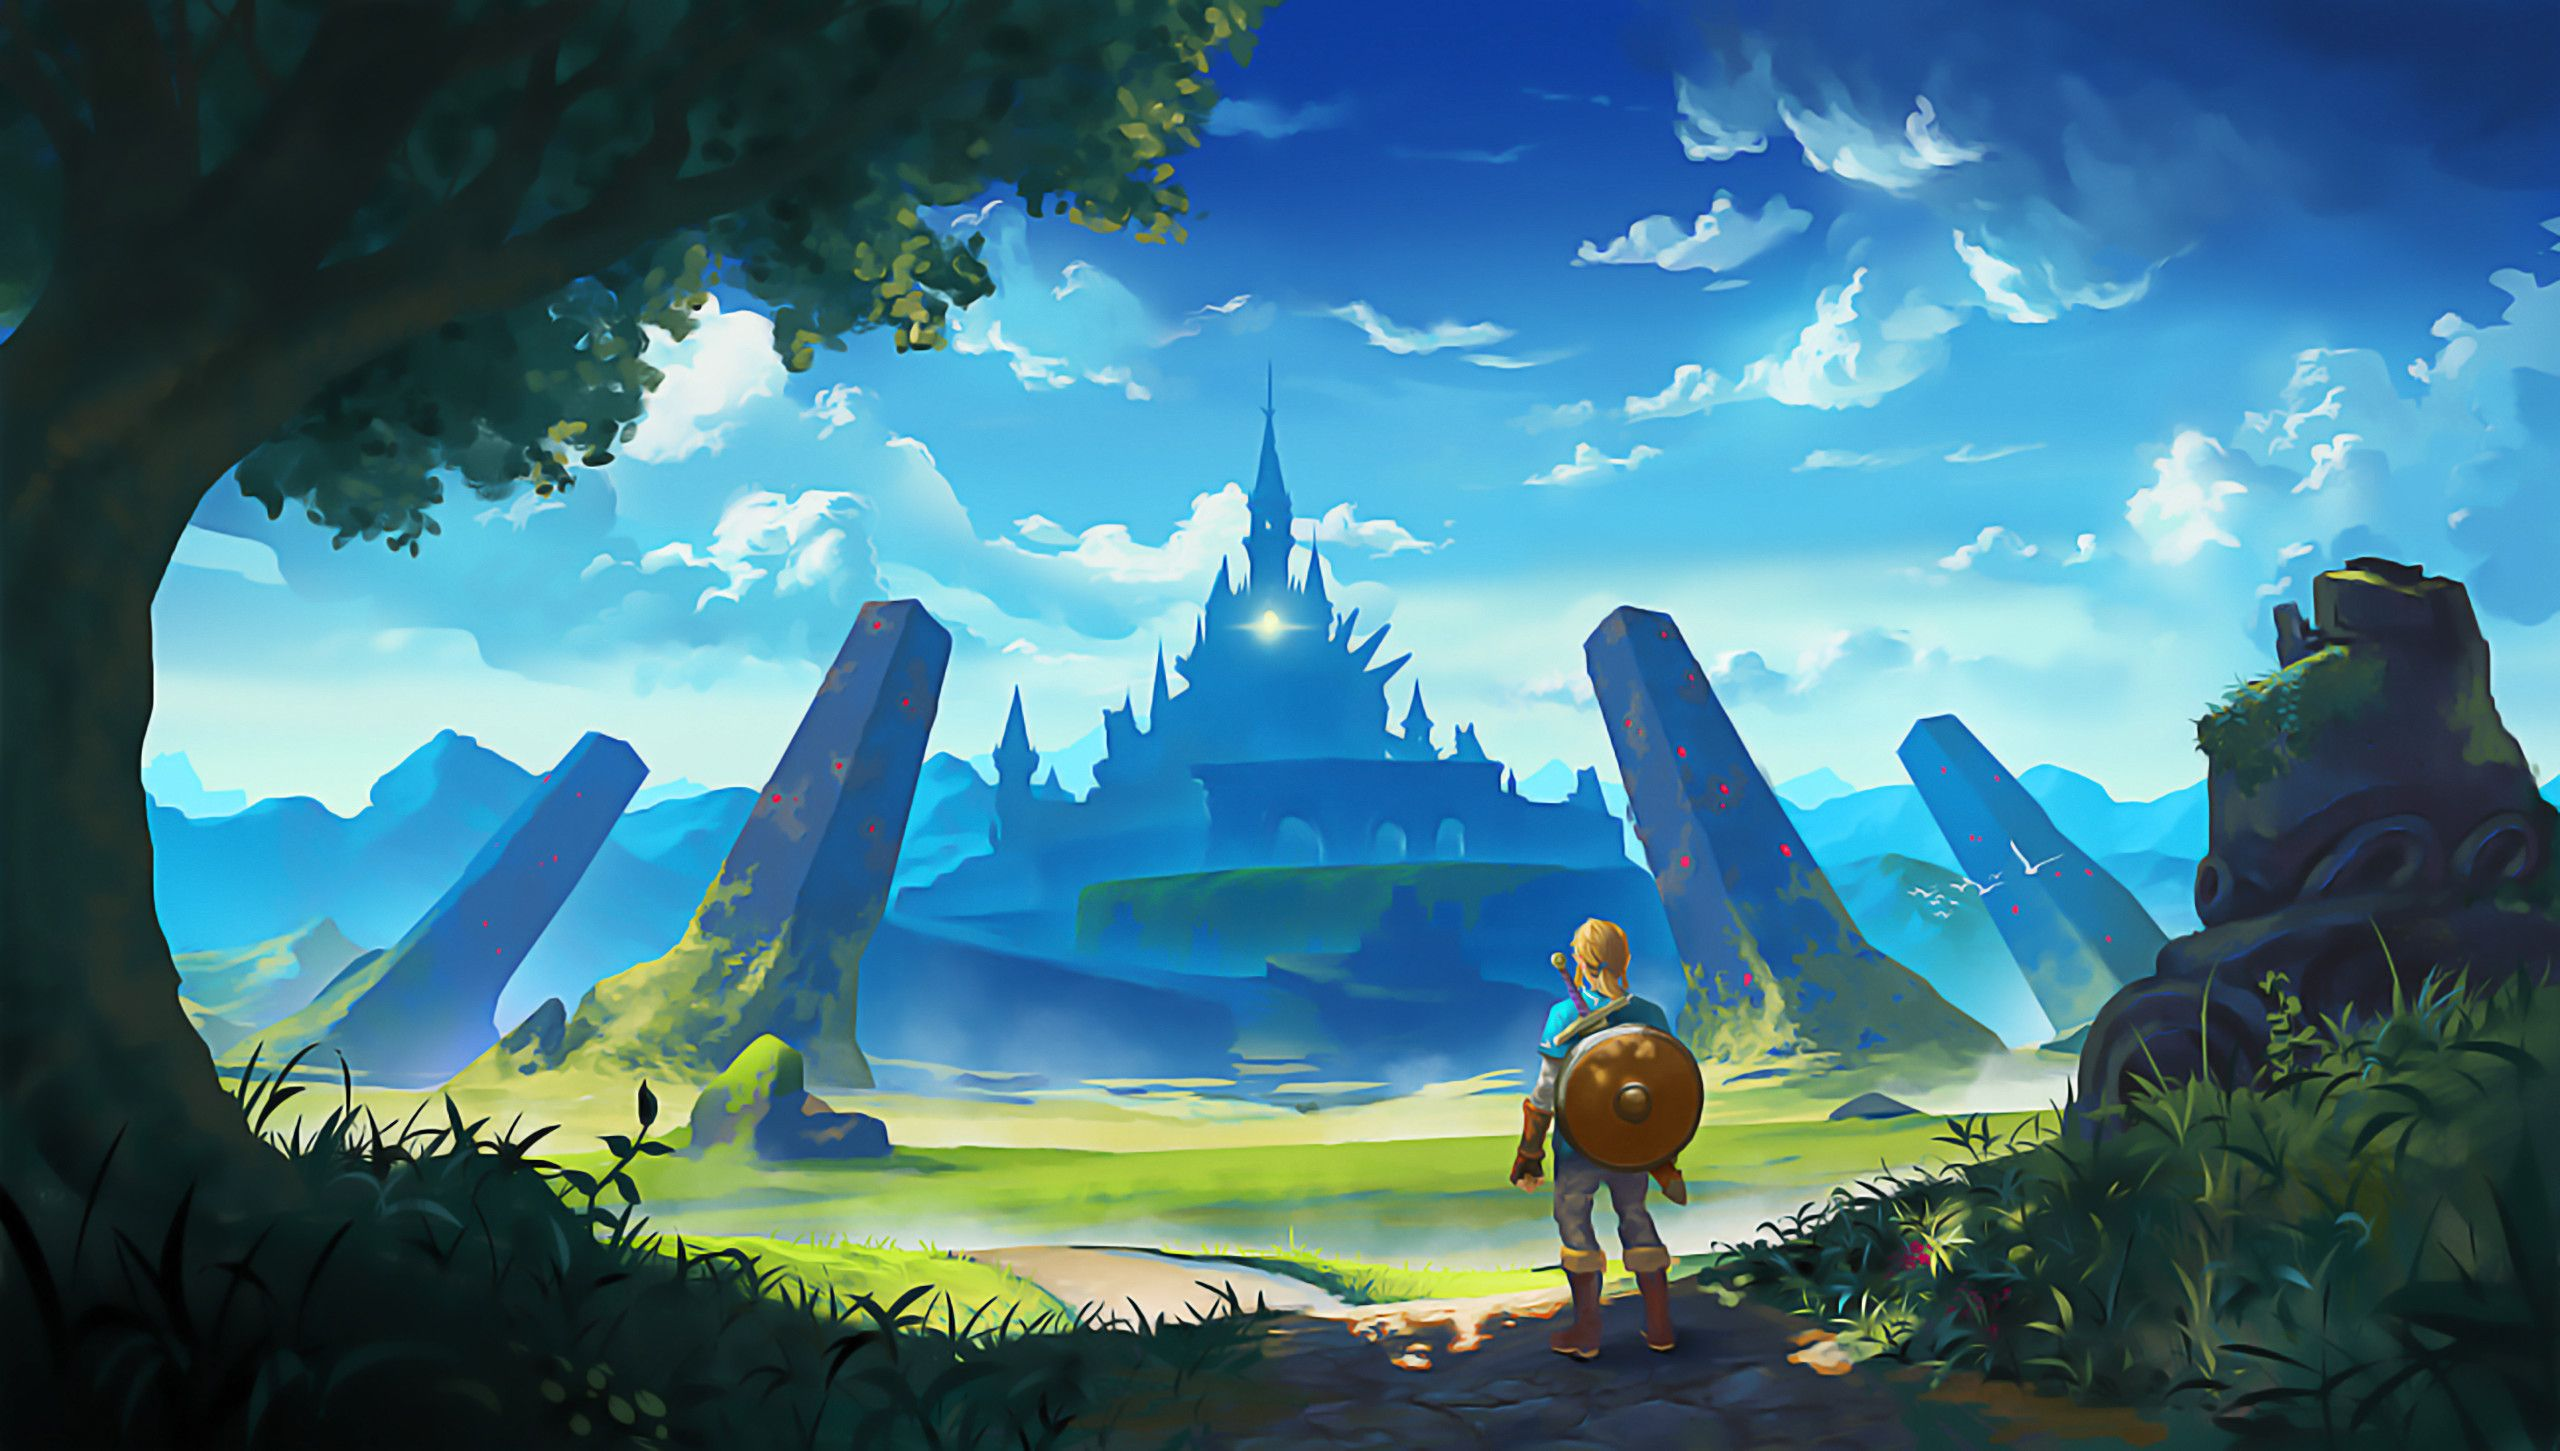 Legend Of Zelda Wallpapers Top Free Legend Of Zelda